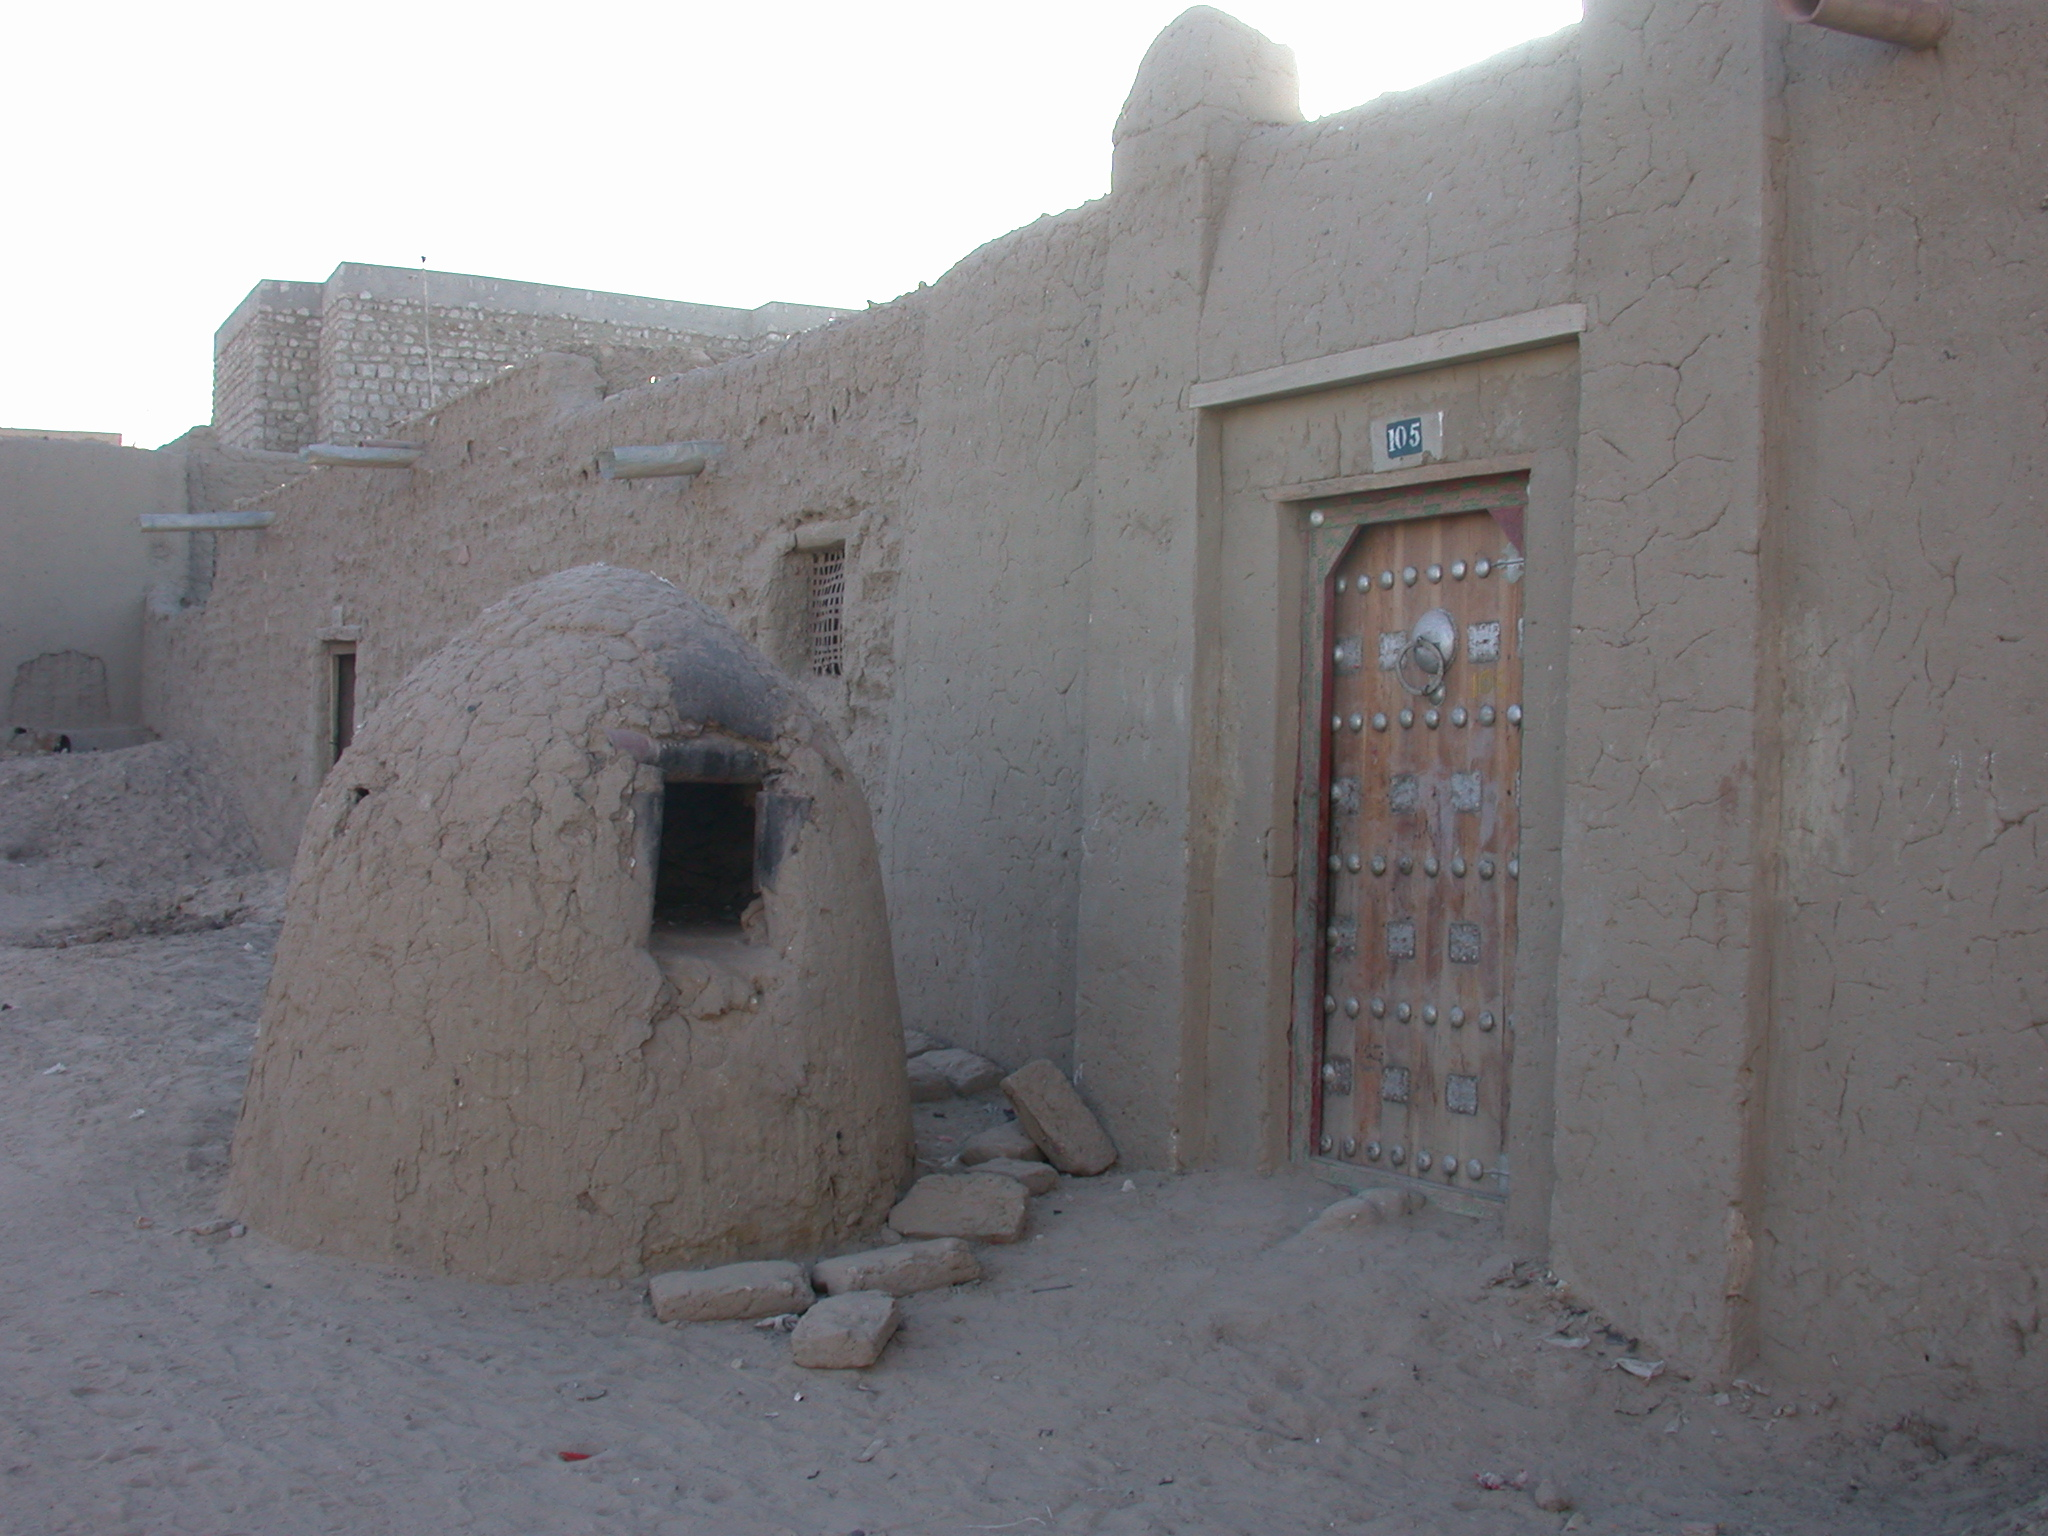 Traditional Oven and Ornamented Wooden Door on Building Near Sankore Mosque, Timbuktu, Mali